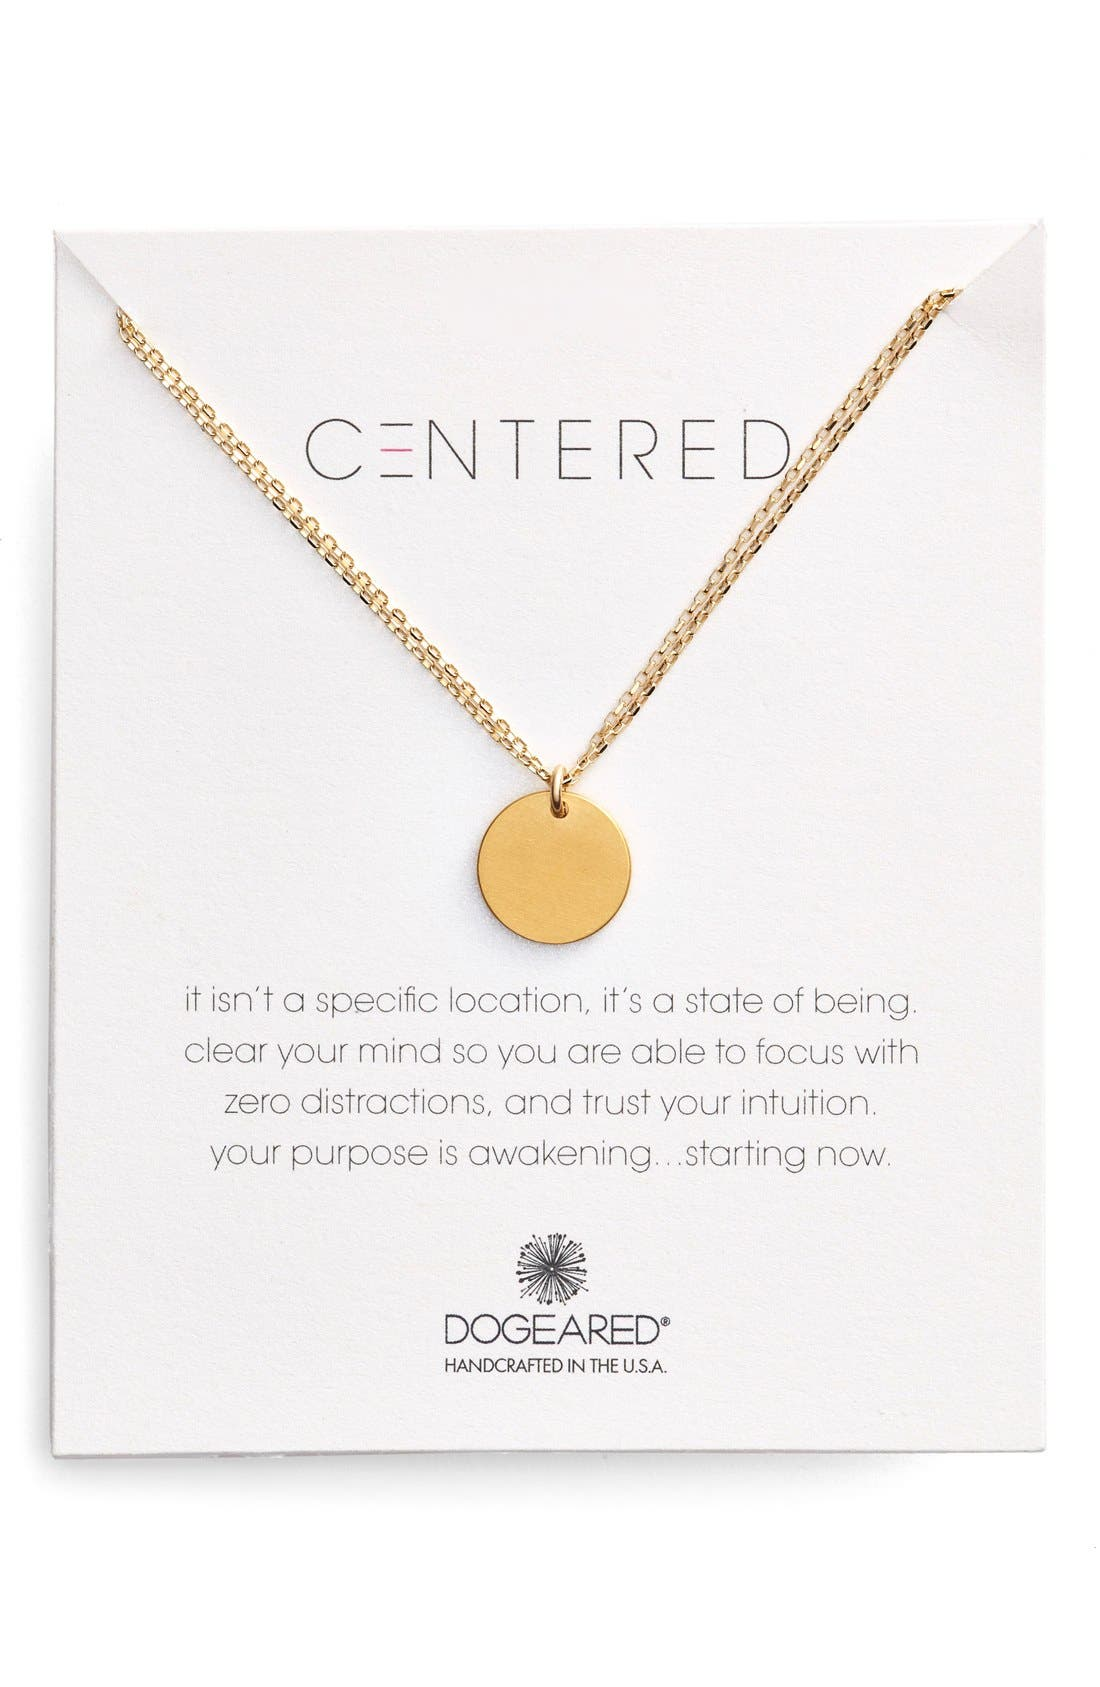 Alternate Image 1 Selected - Dogeared 'Centered' Large Circle Charm Necklace